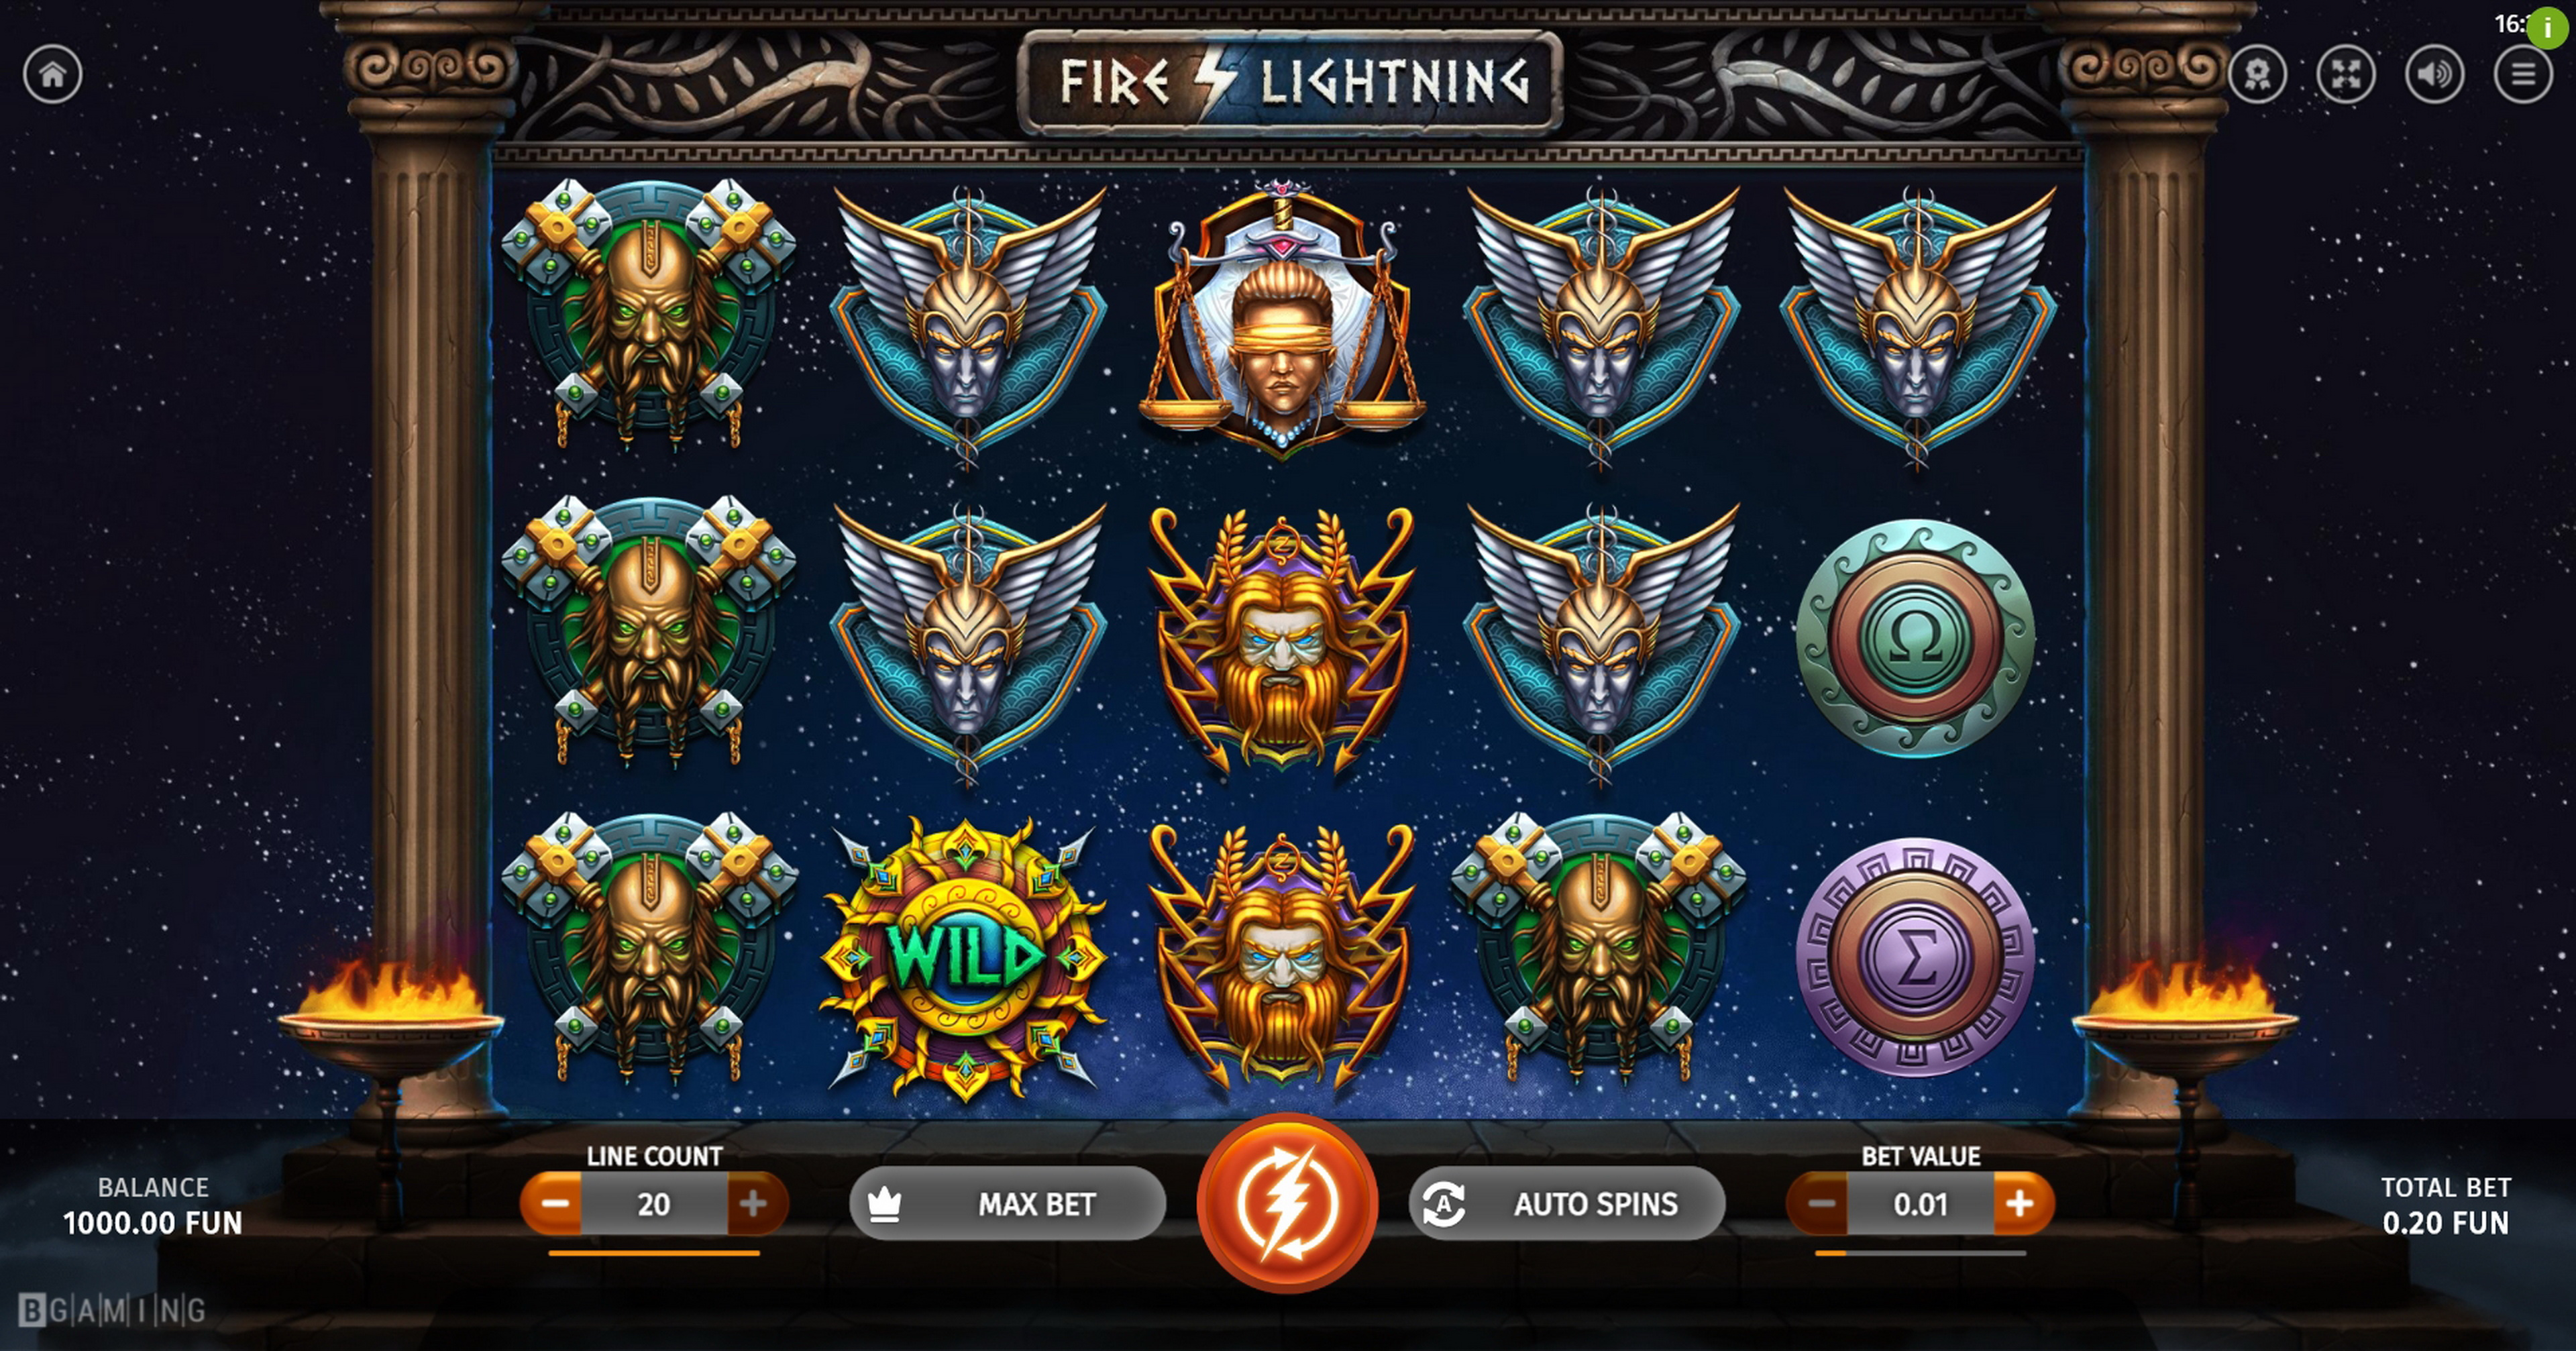 Reels in Fire Lightning Slot Game by BGAMING